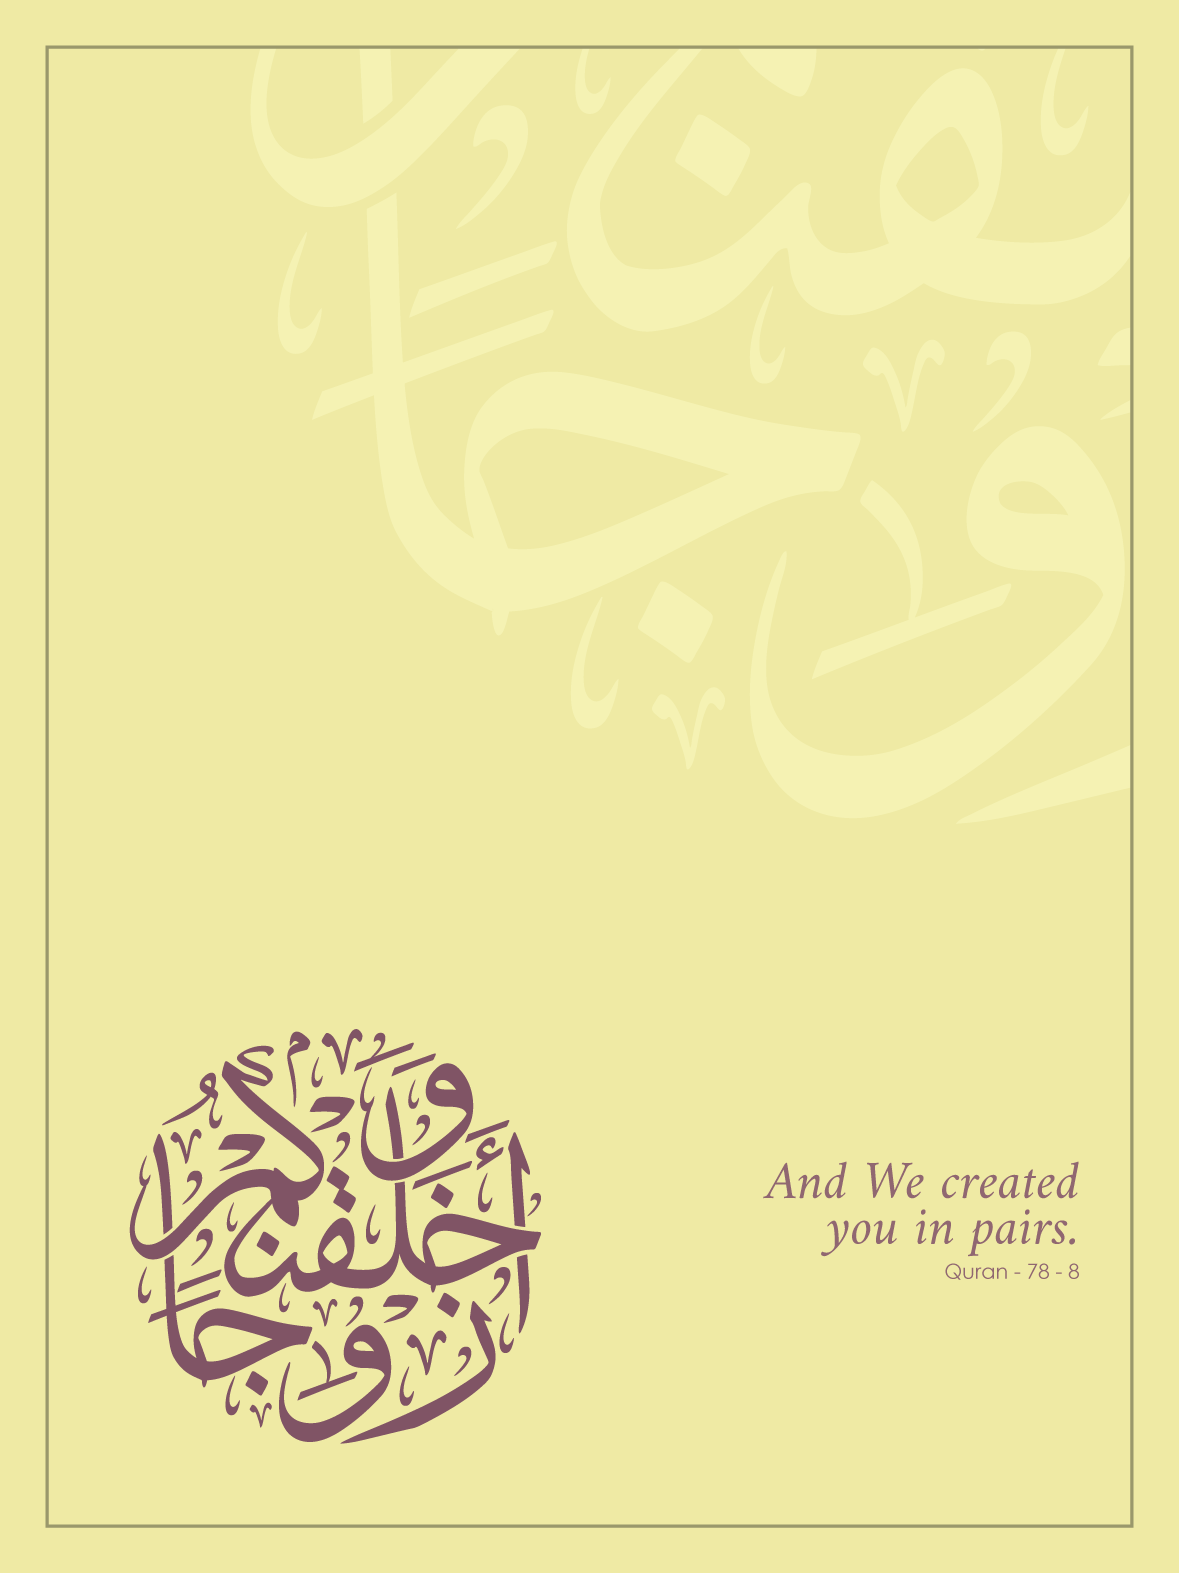 Arabic Calligraphy For You And We Created You In Pairs و خ ل ق ن اك م أ ز و اج ا